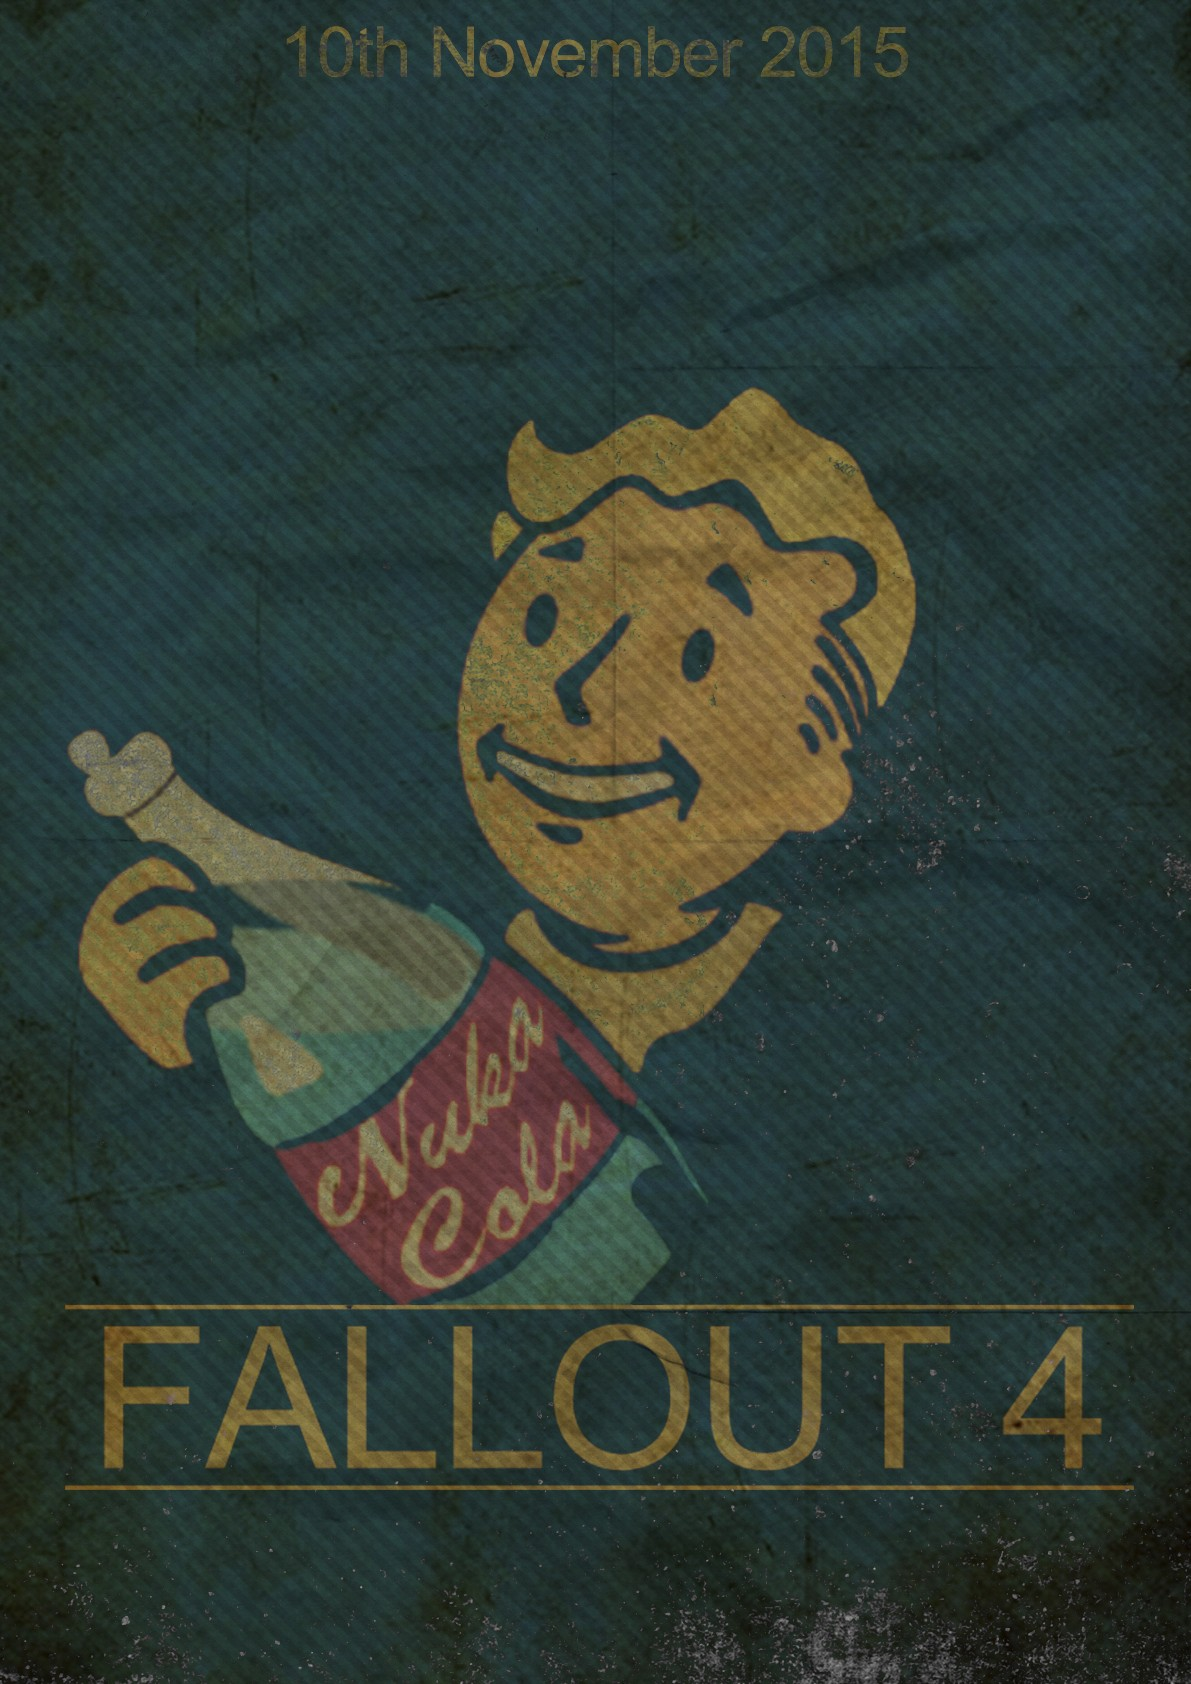 Fallout 4 (RU+CIS Steam gift)